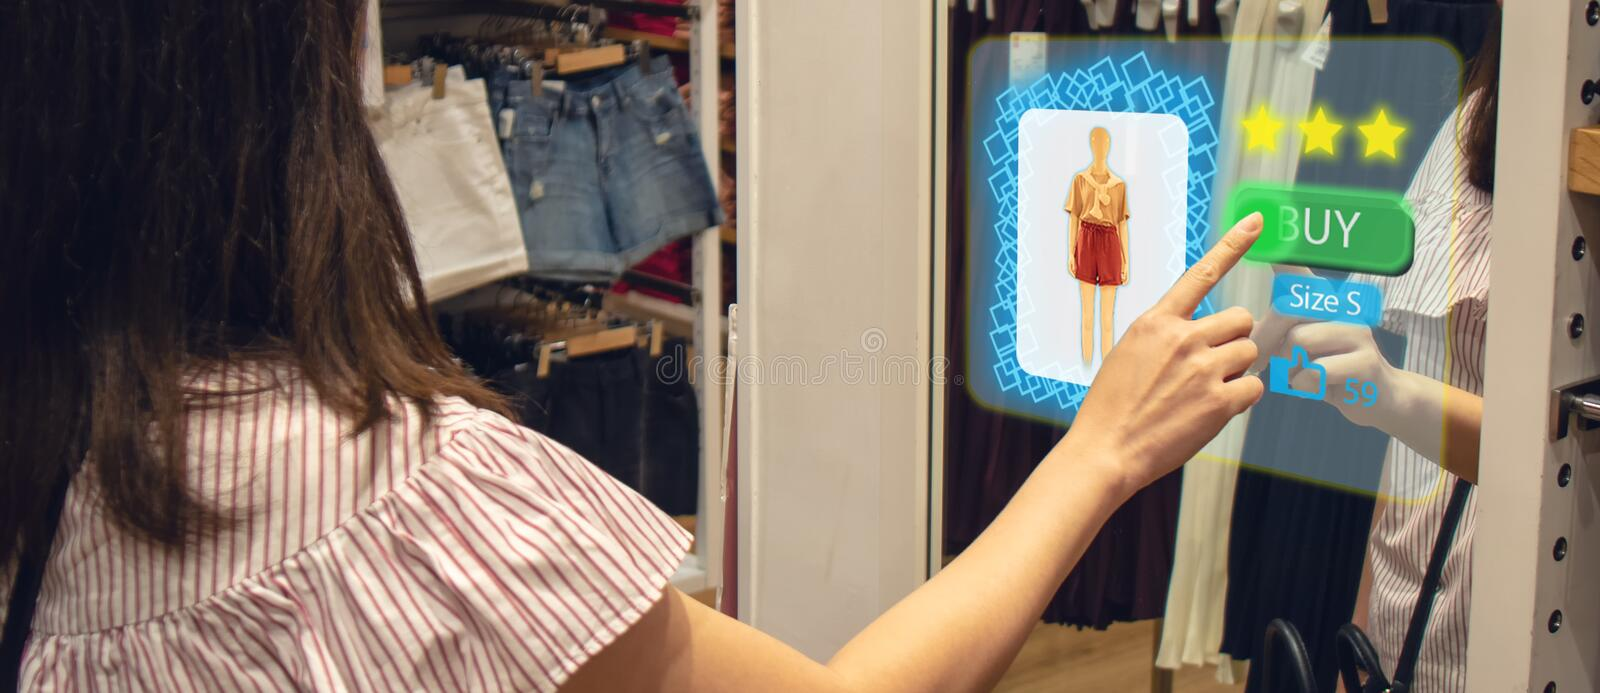 Iot smart retail futuristic technology concept, happy girl try to use smart display with virtual or augmented reality in the shop royalty free stock photography